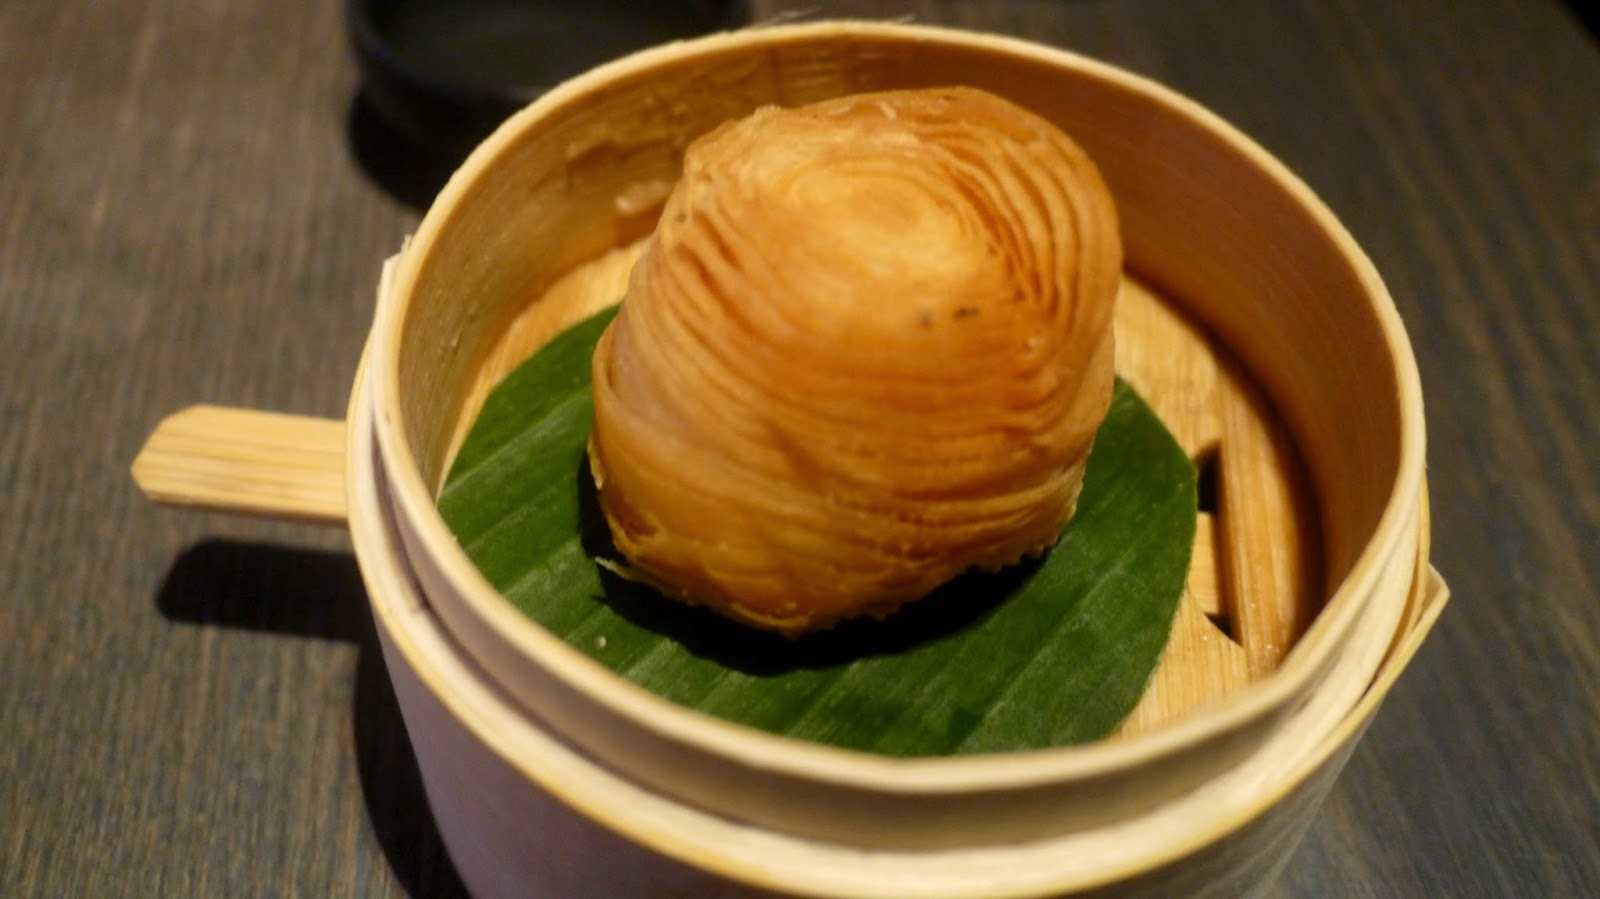 yauatcha 10th anniversary secret menu scallop and lychee dim sum